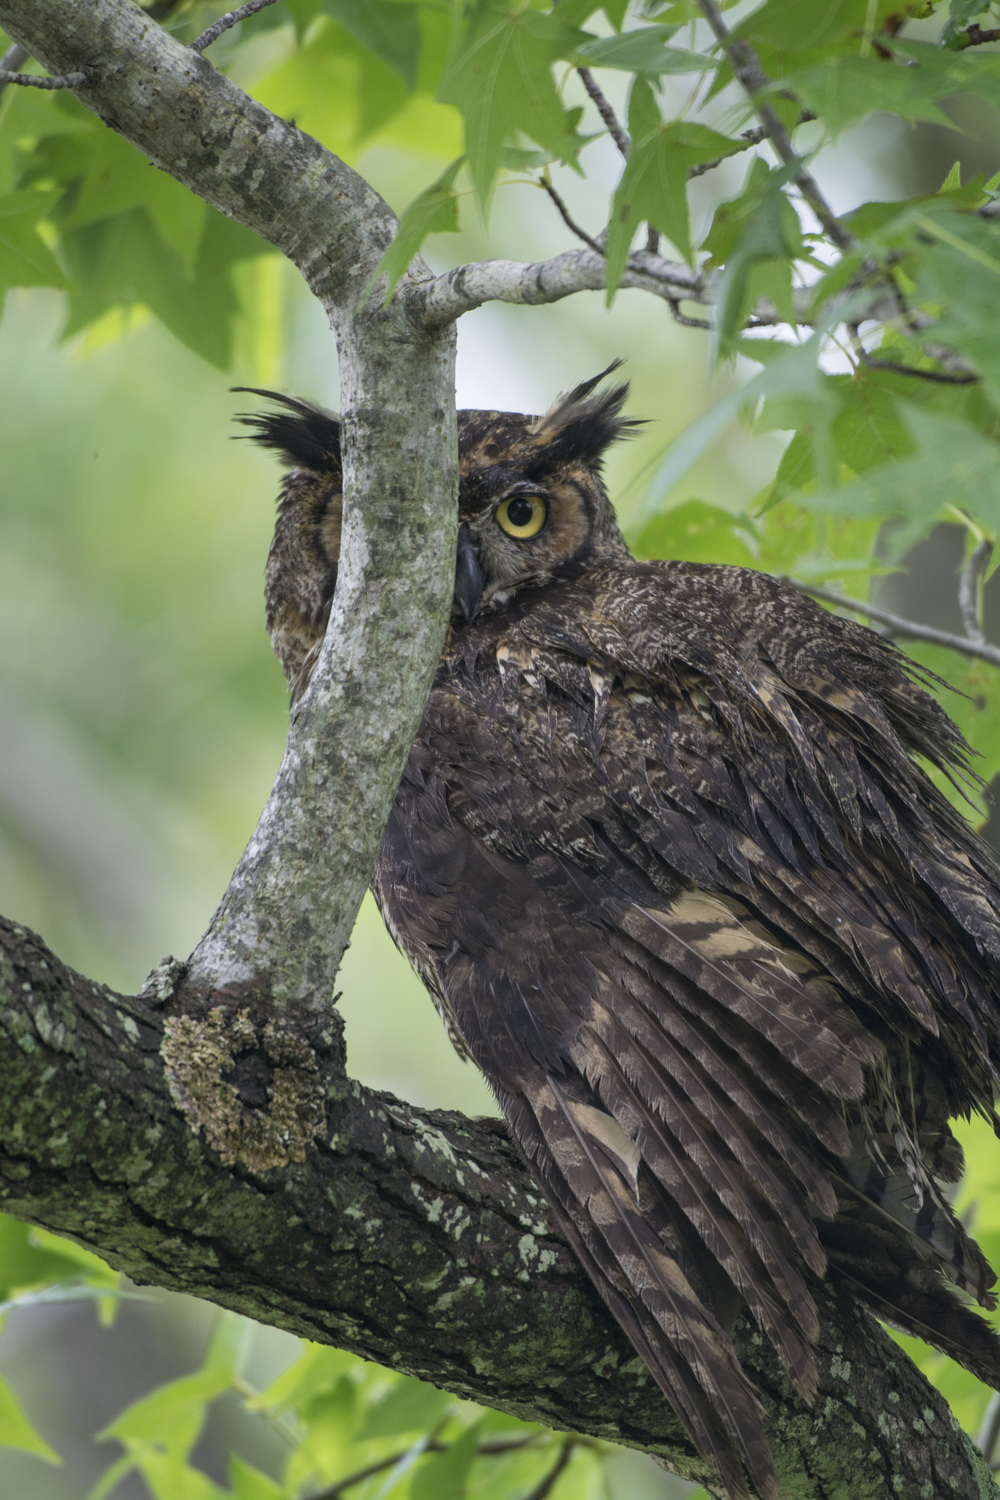 Great Horned Owl at Bombay Hook NWR